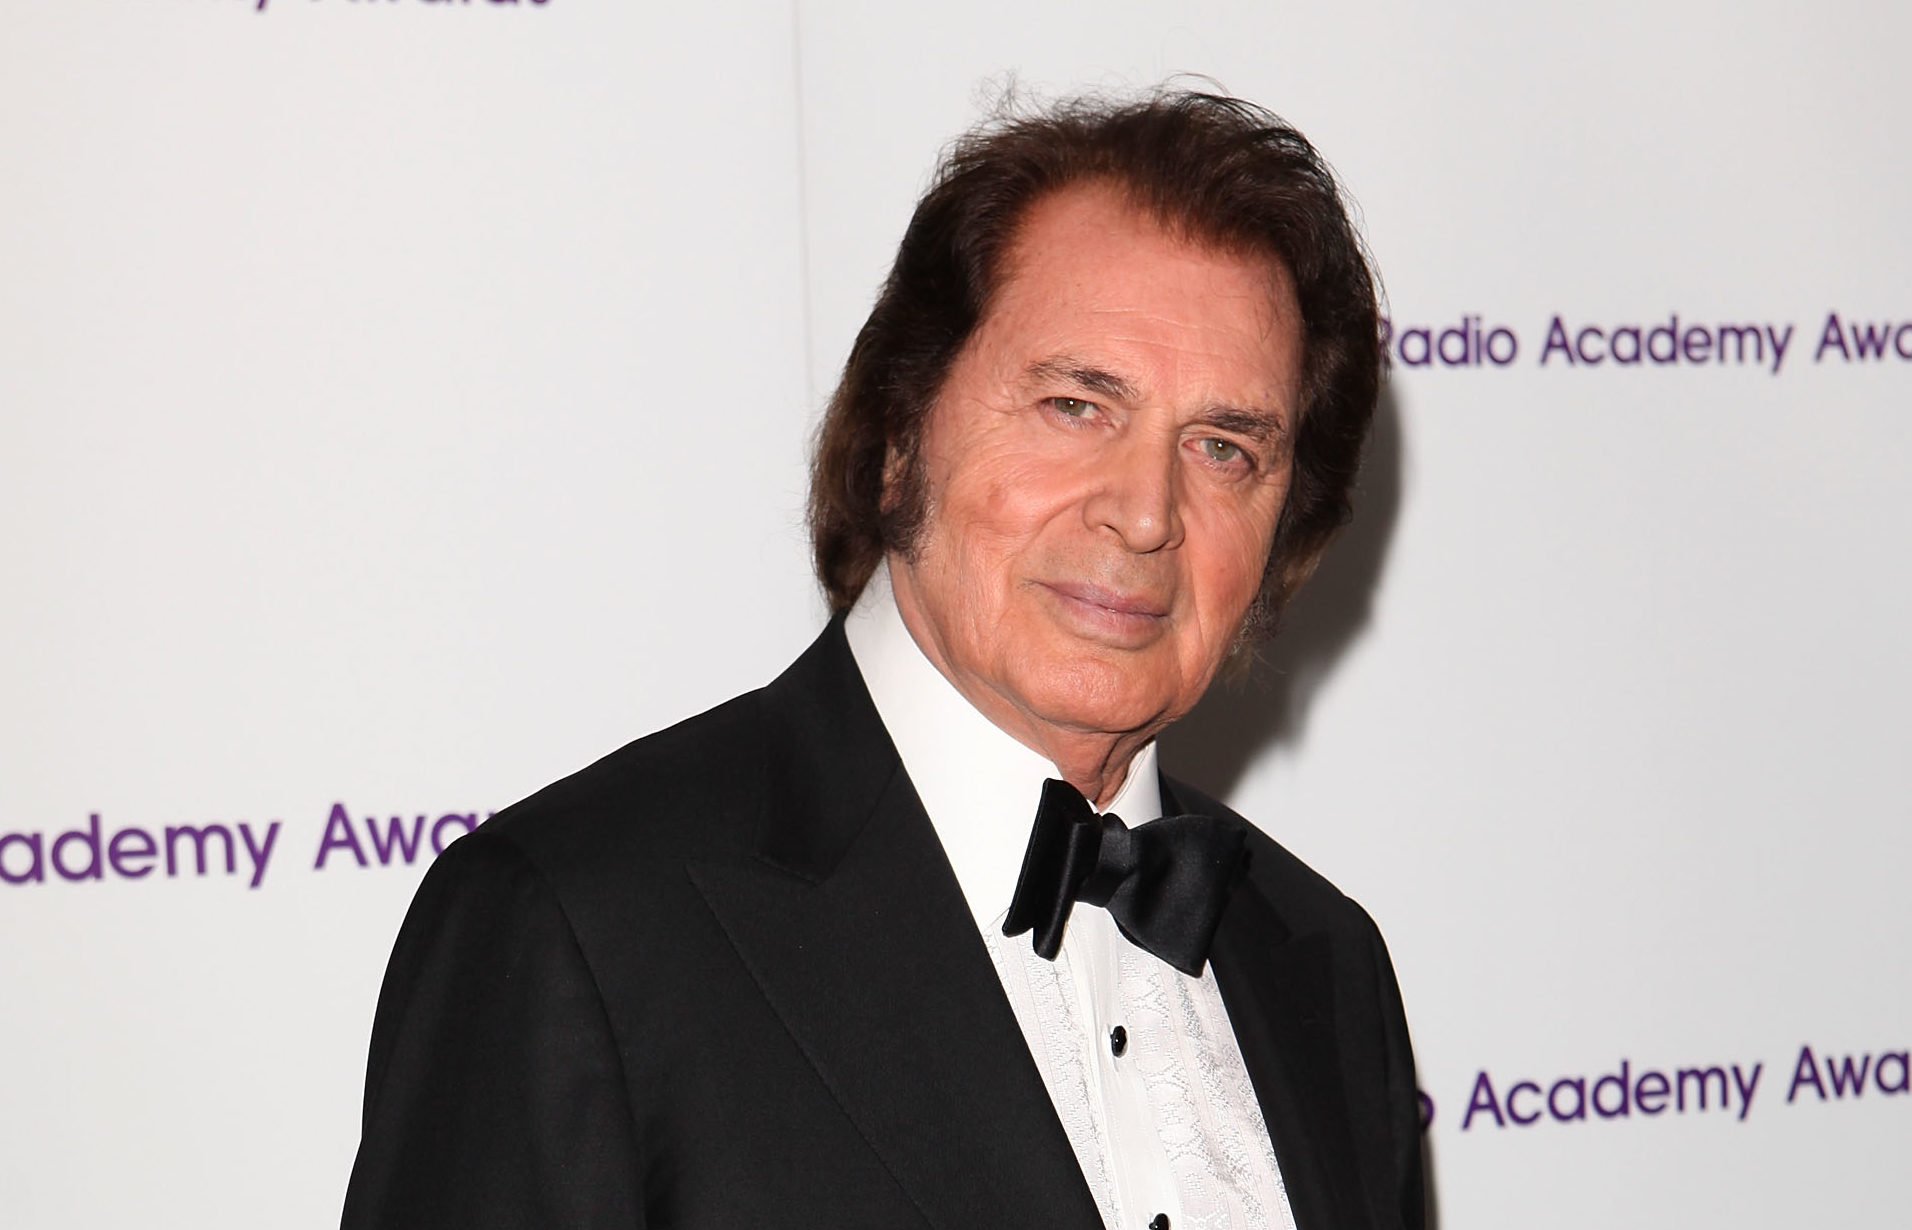 Engelbert Humperdinck at the Sony Radio Adacemy Awards. (Tim Whitby/Getty Images)